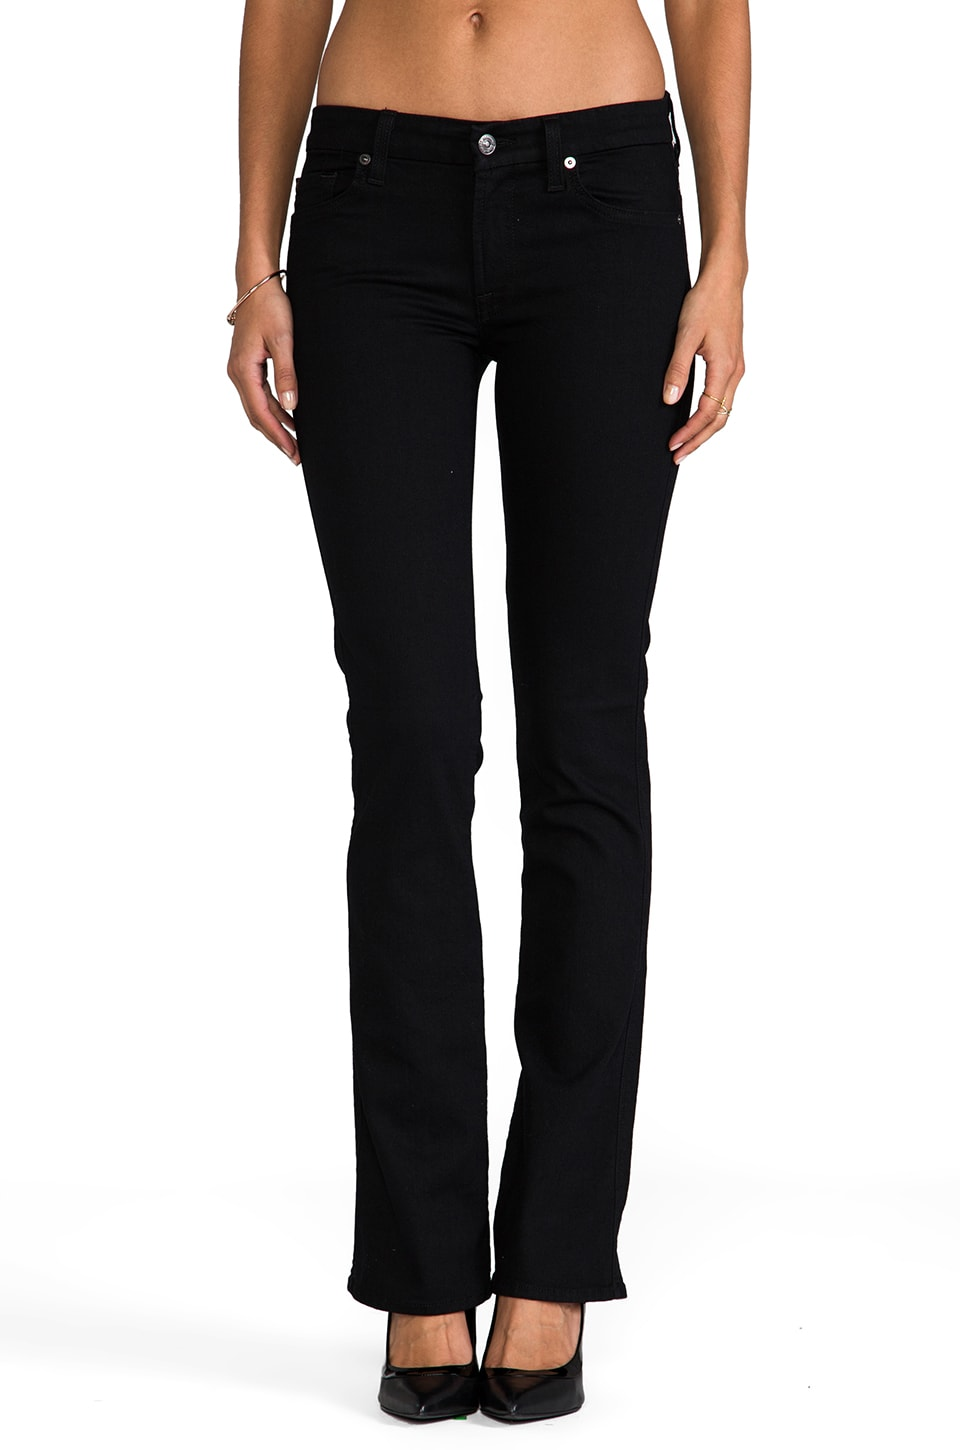 7 For All Mankind The Skinny Bootcut in Second Skin Slim Illusion Elasticity Black